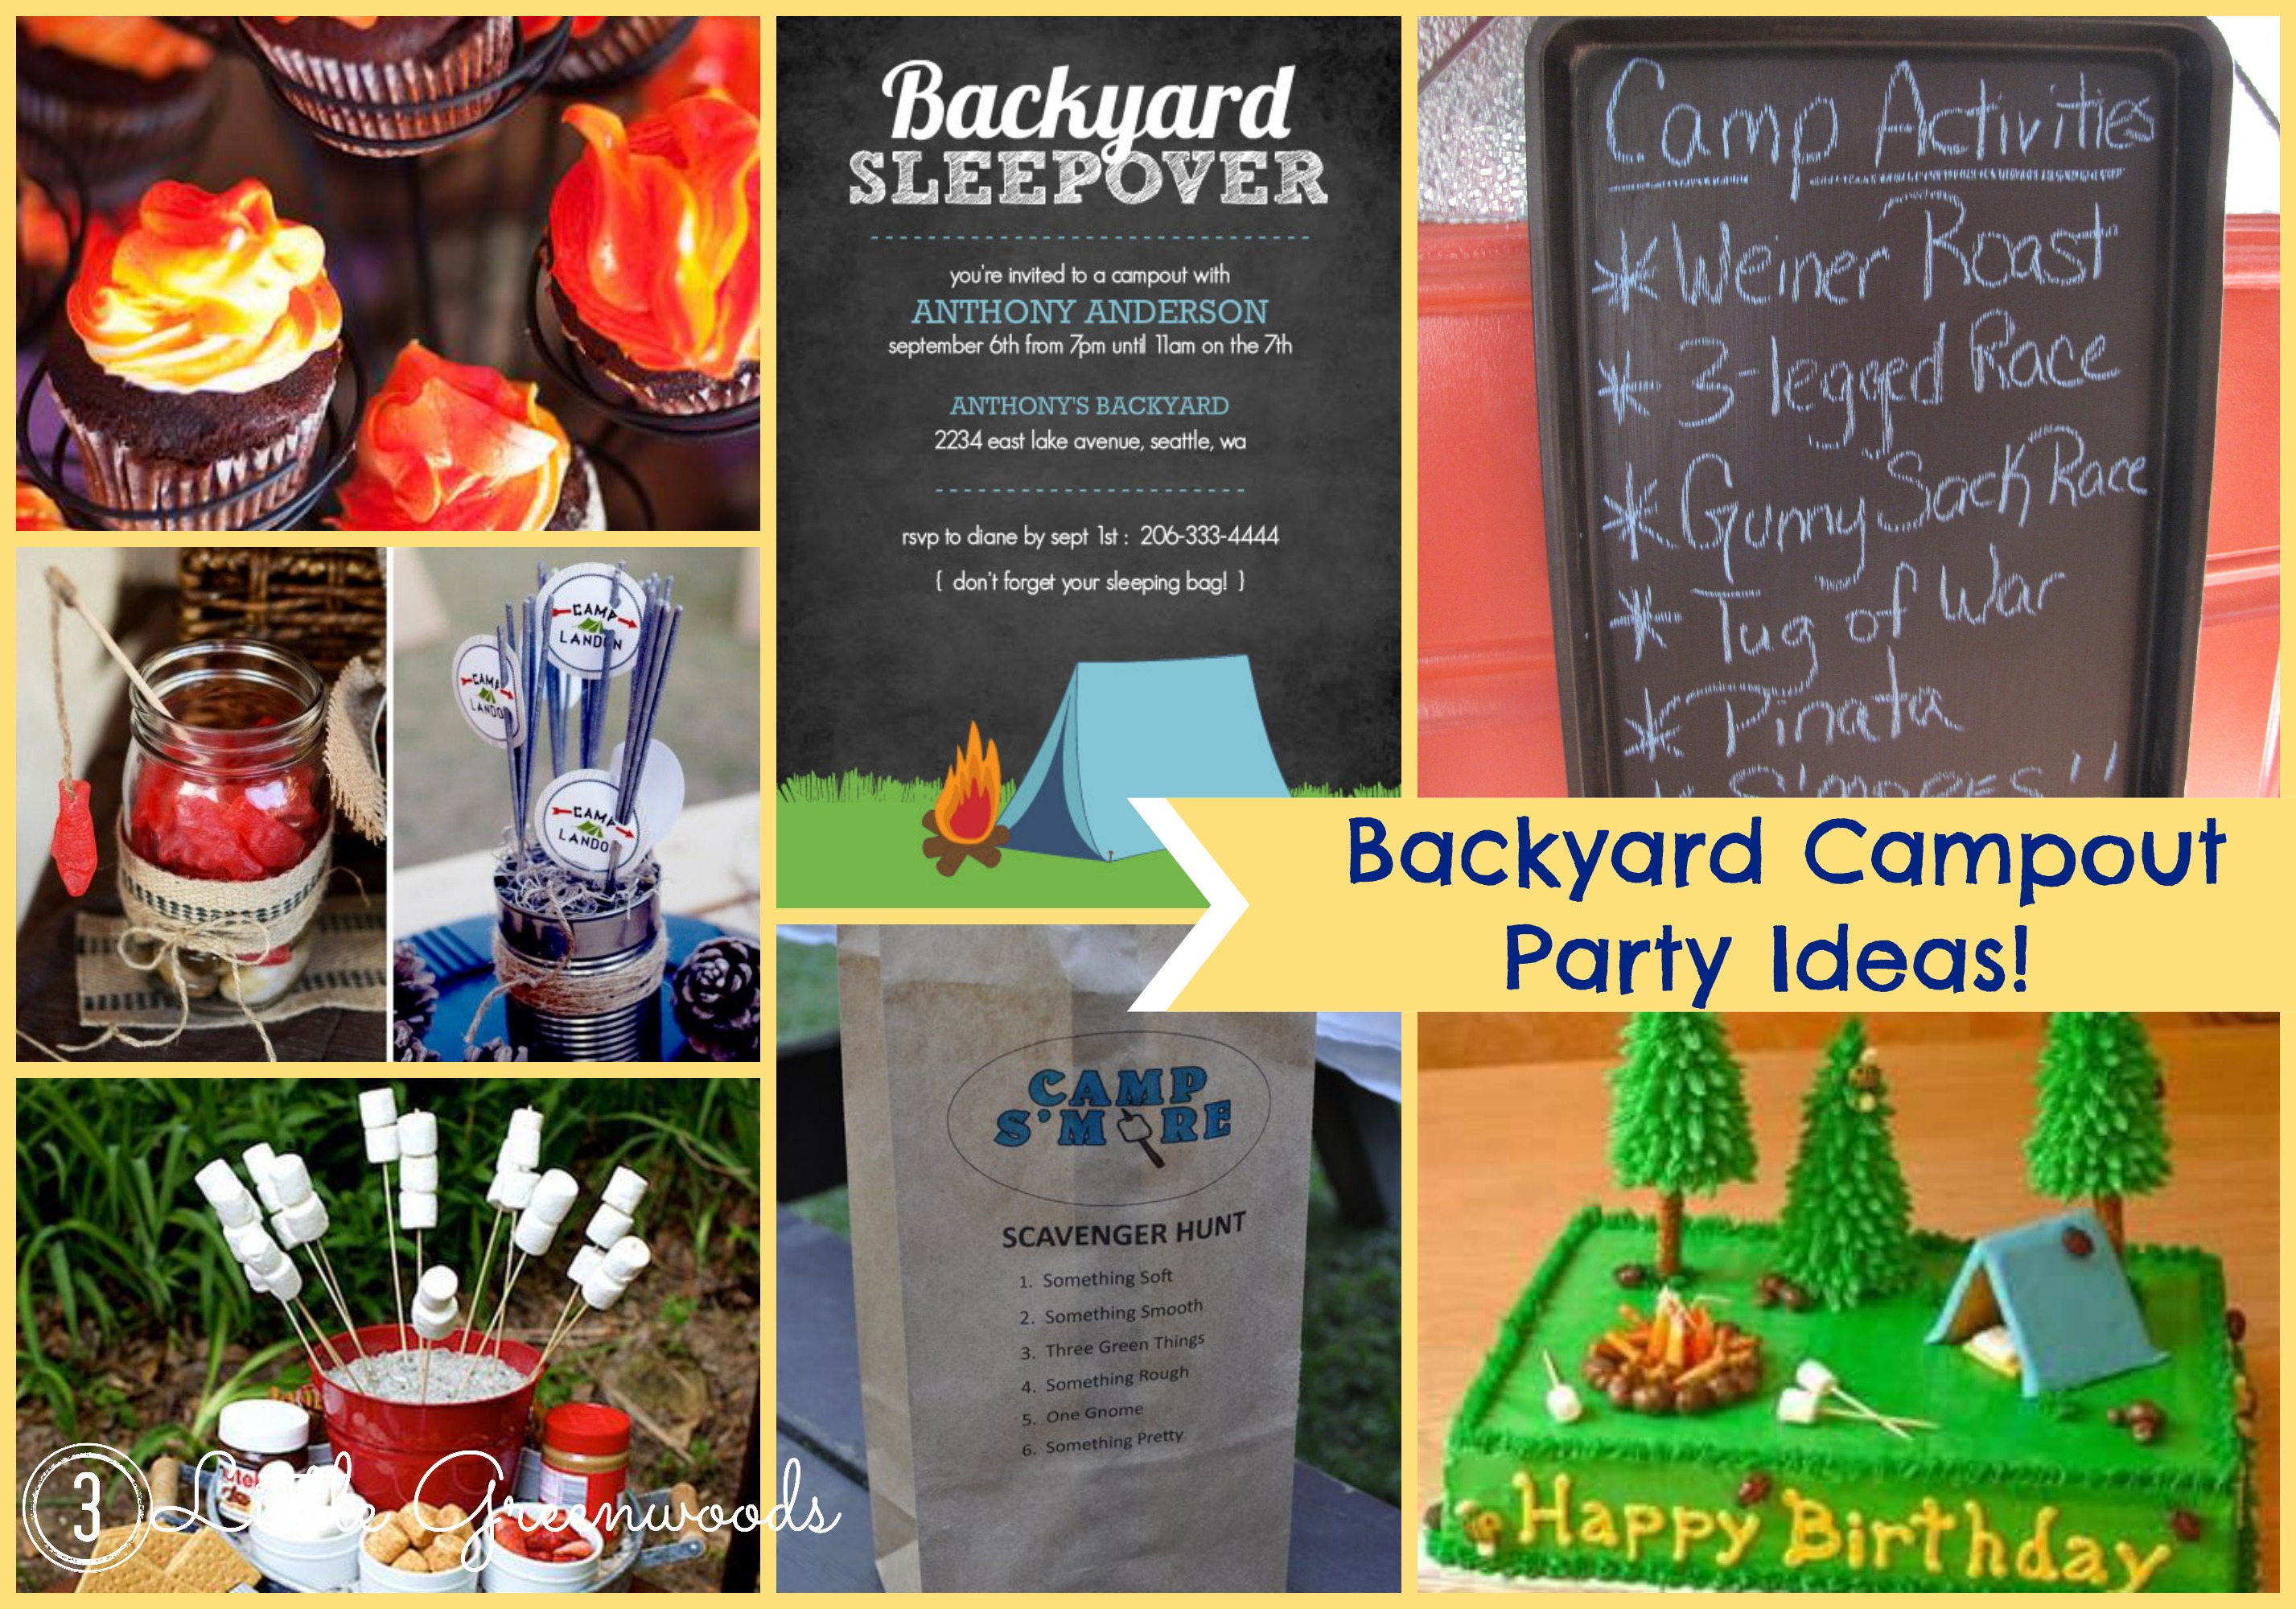 Backyard Campout Party Inspiration